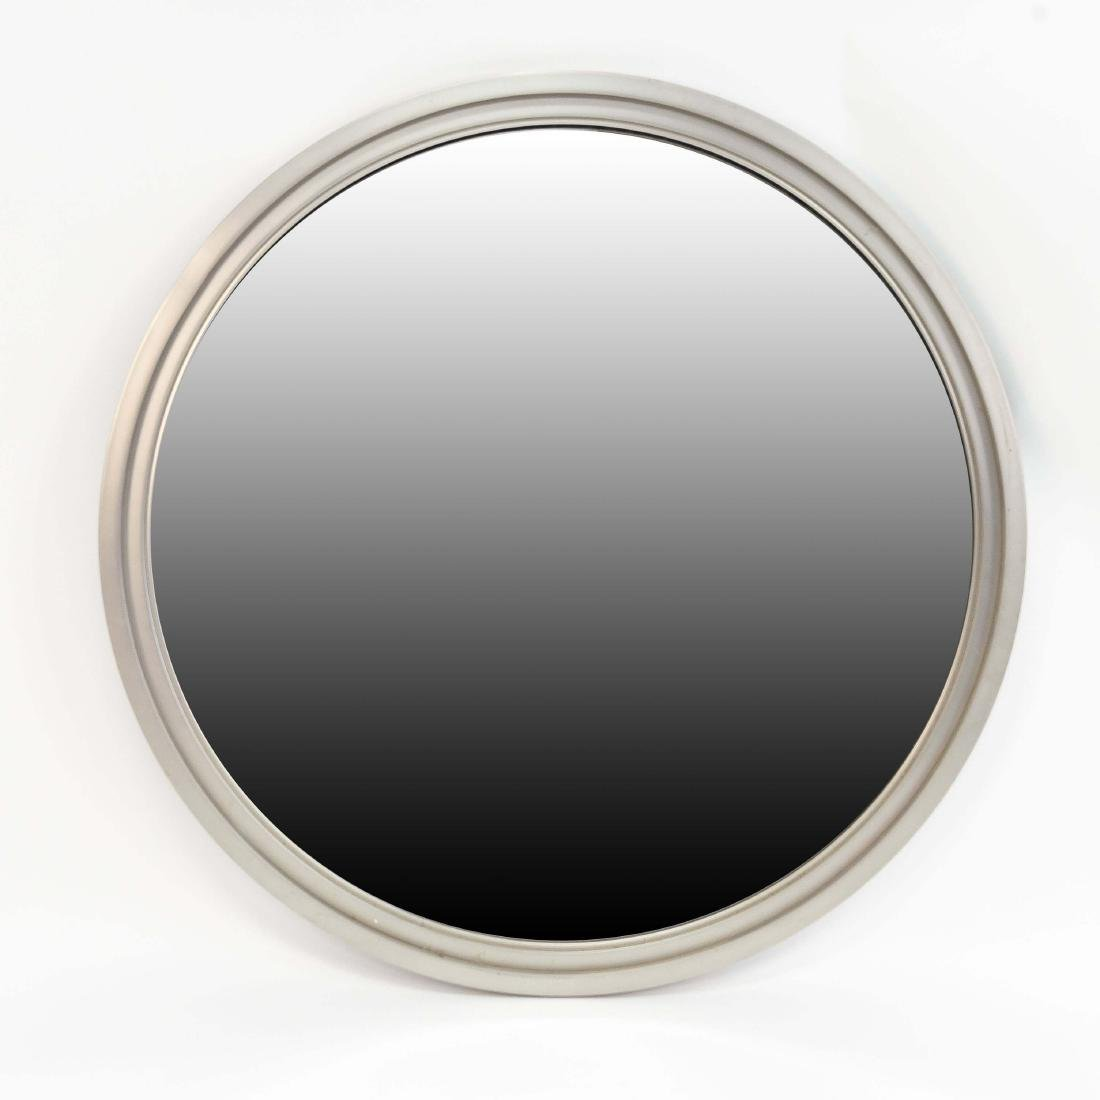 MINIMALIST STEEL FRAMED BEVELED ROUND WALL MIRROR